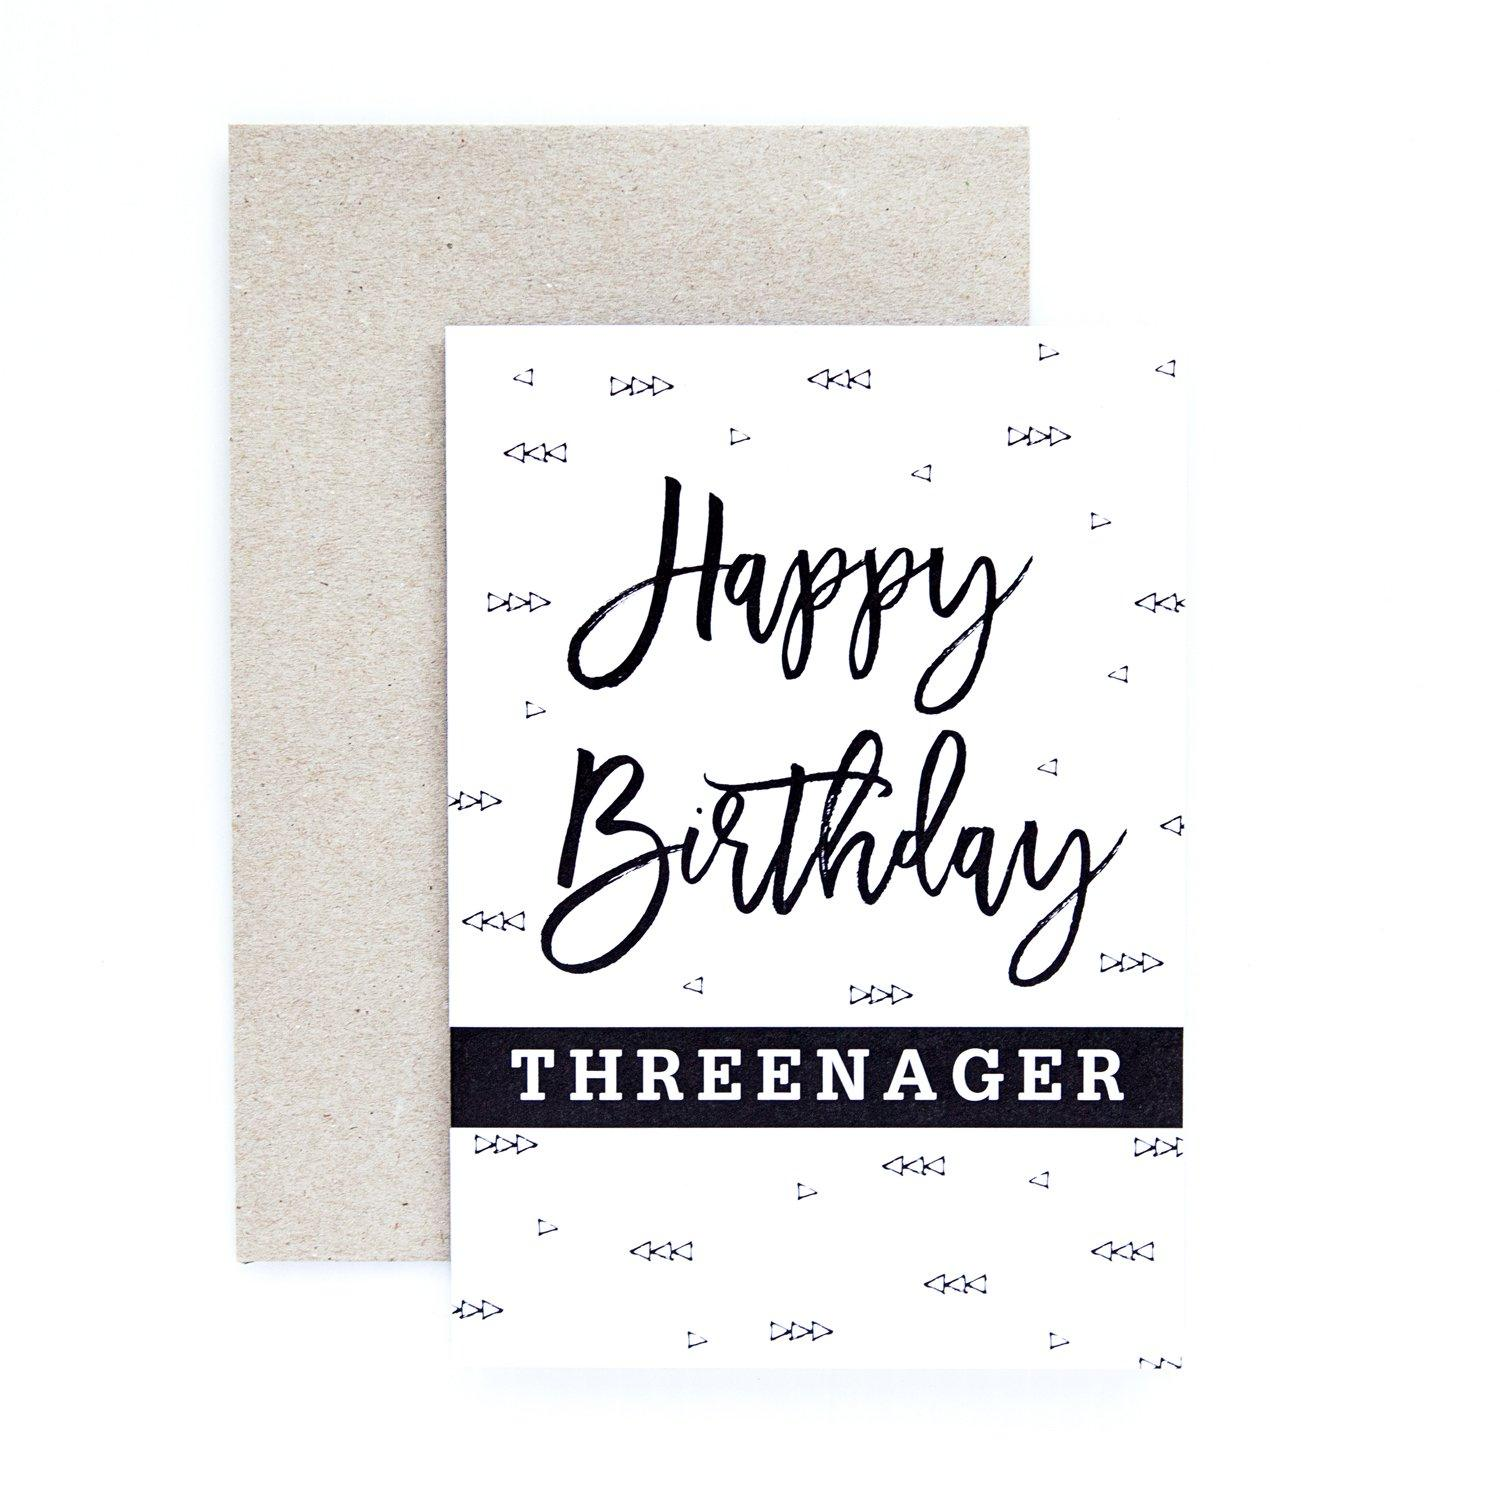 Threenager Greeting Card